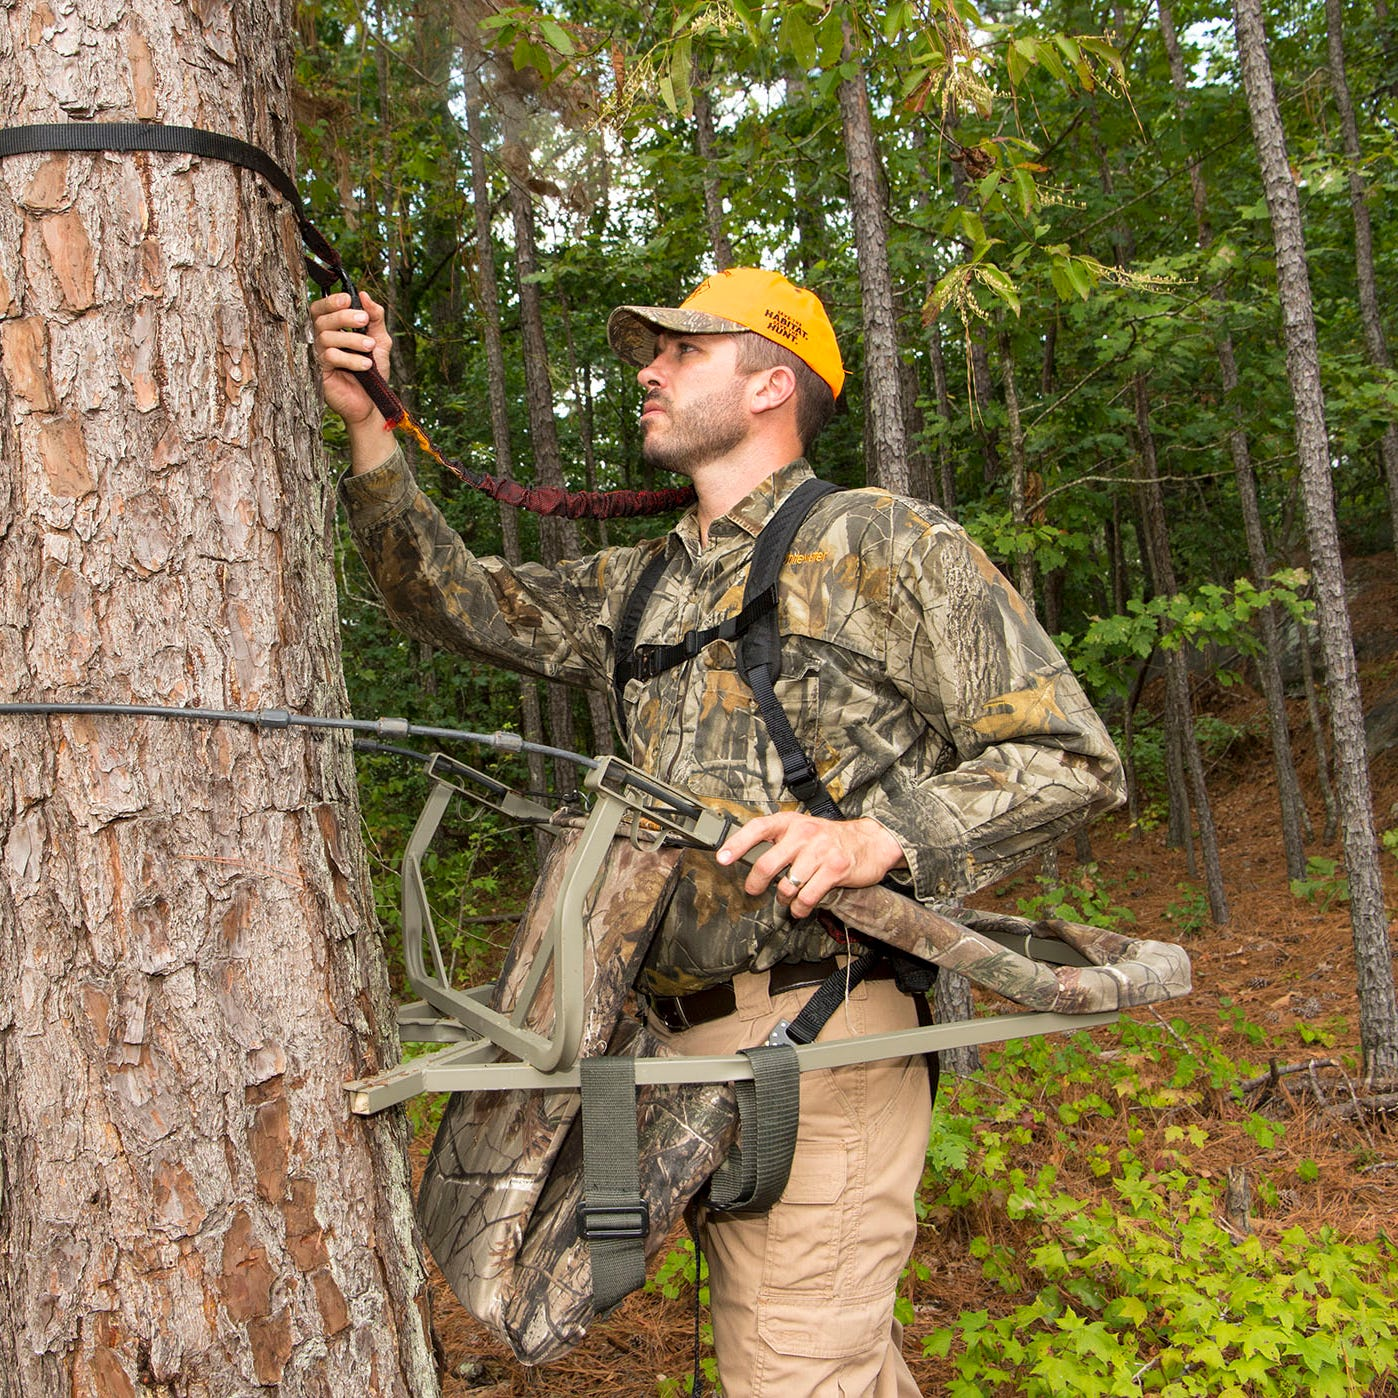 Hunting deaths spiked last year in NC. How can you avoid hunting injuries and fatalities?